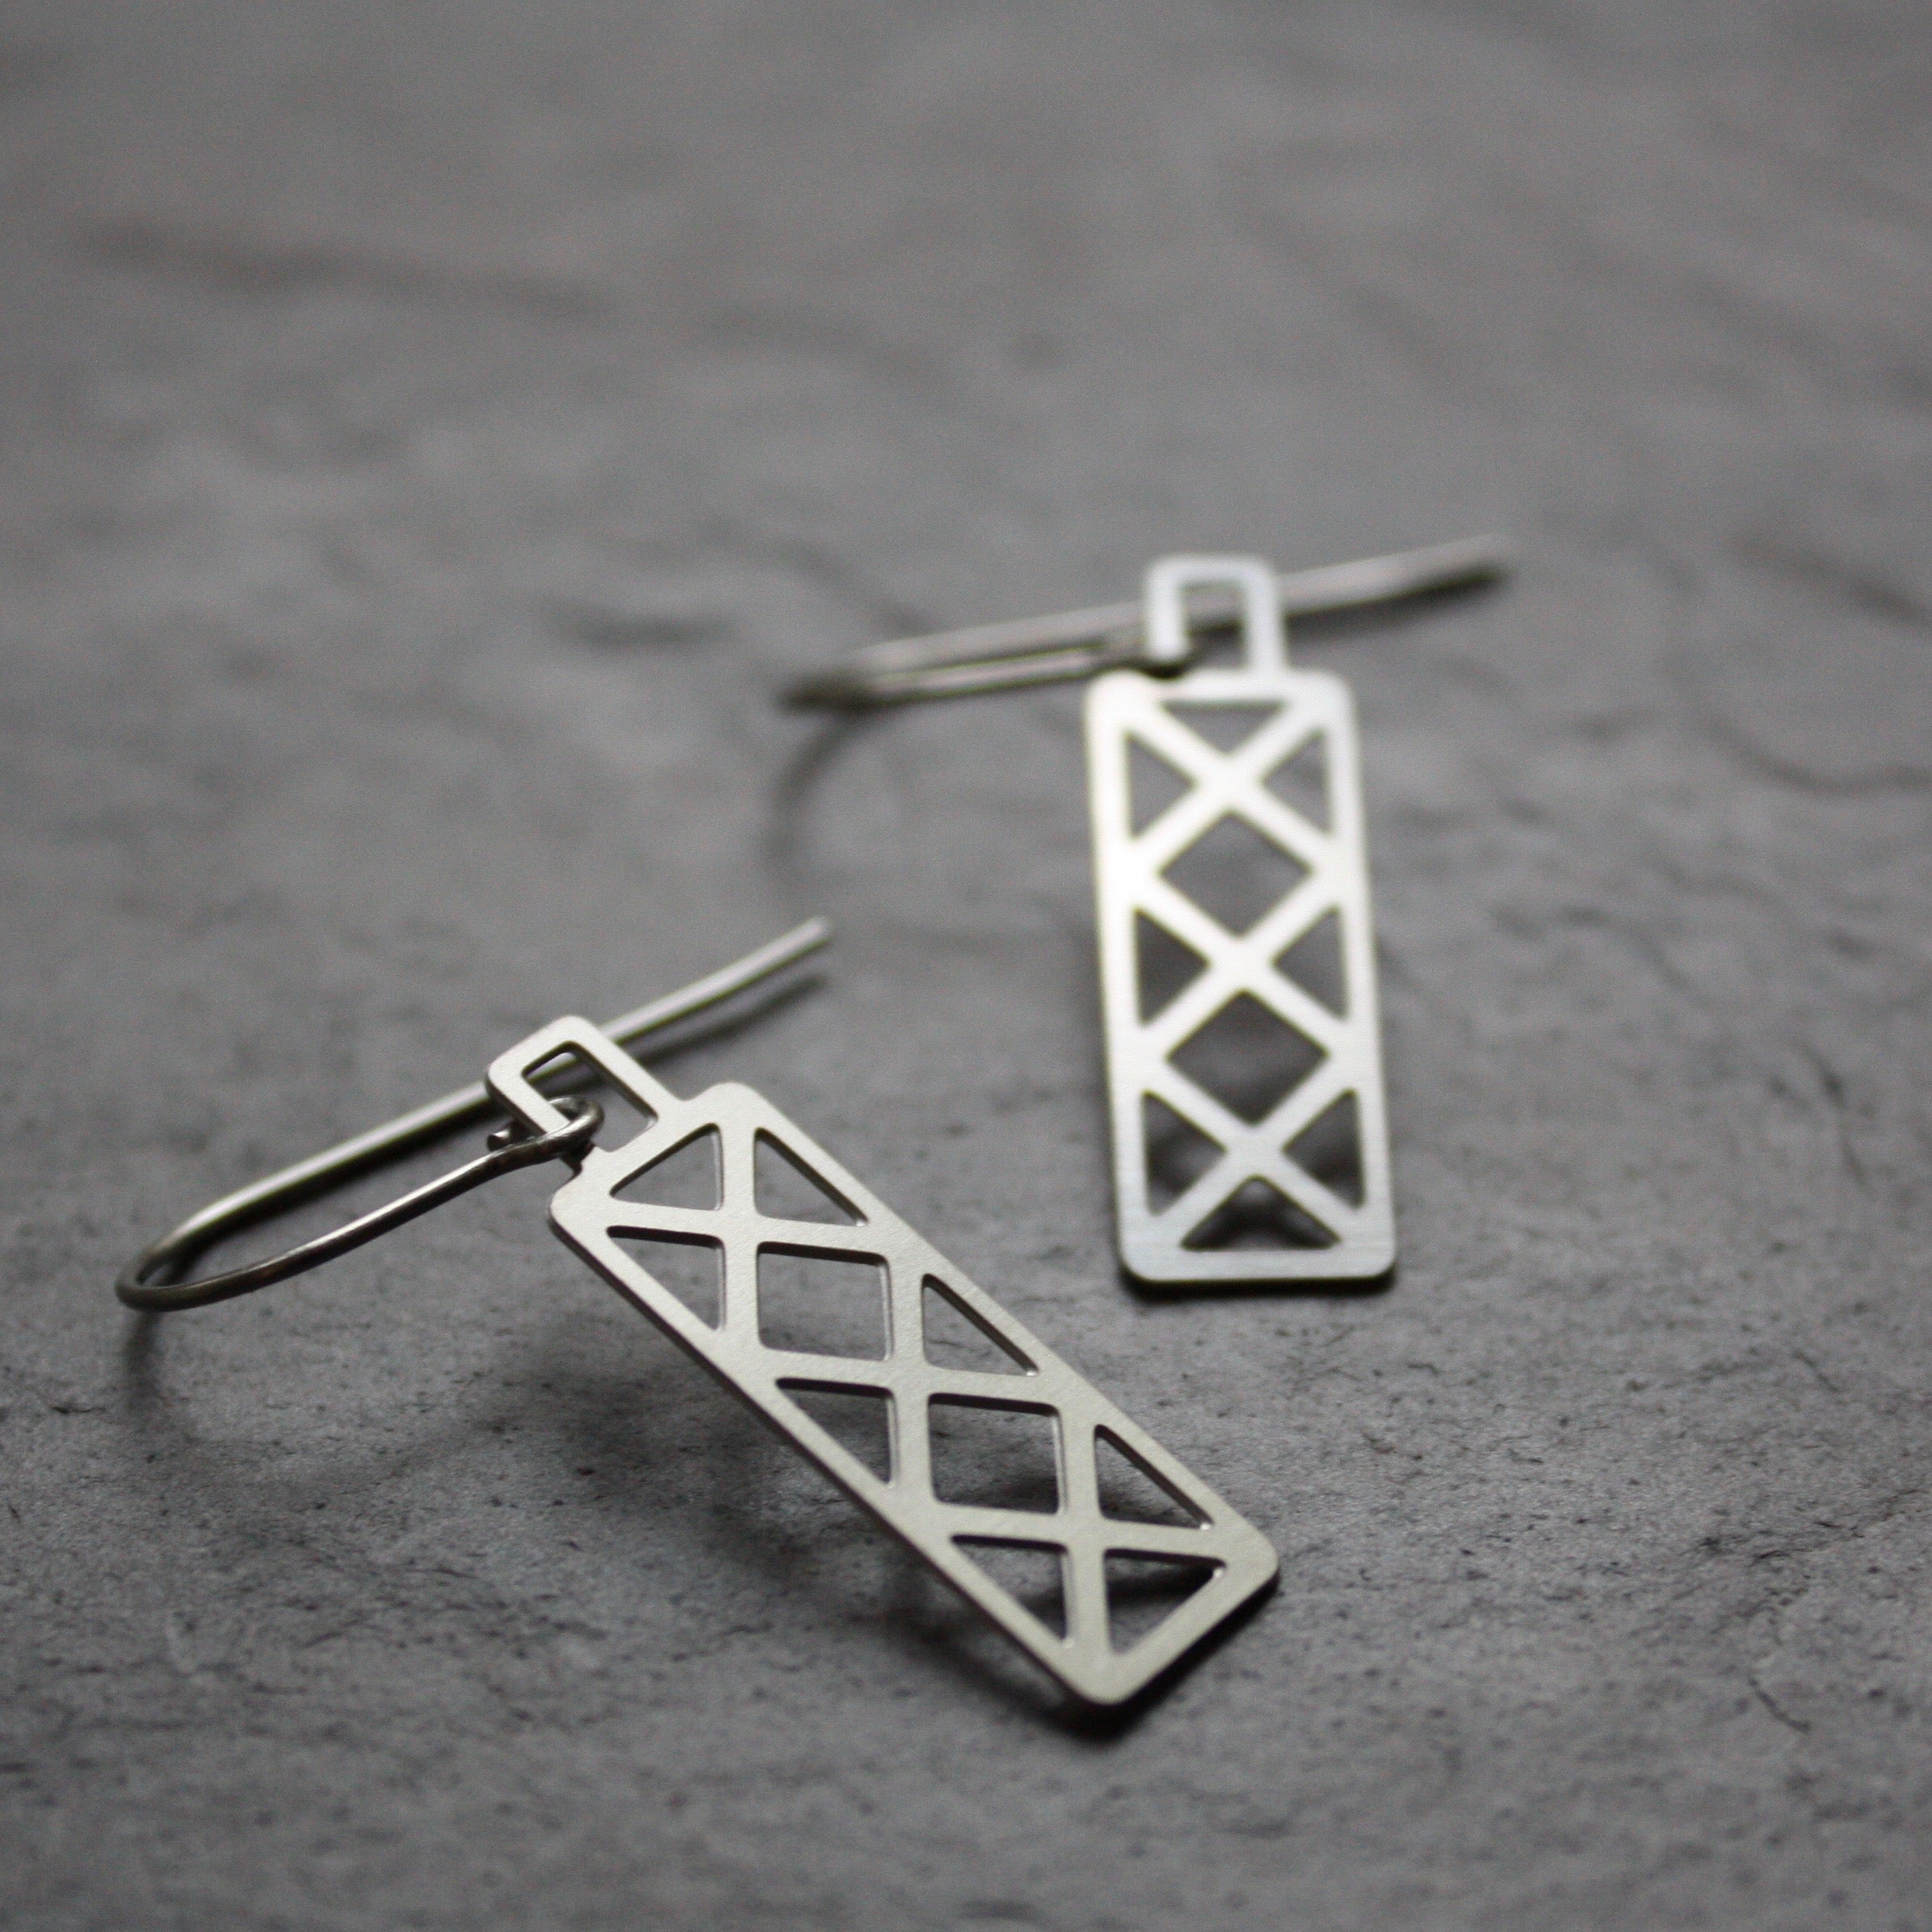 Bridge Truss Earrings | Hex Dangle by Audra Azoury